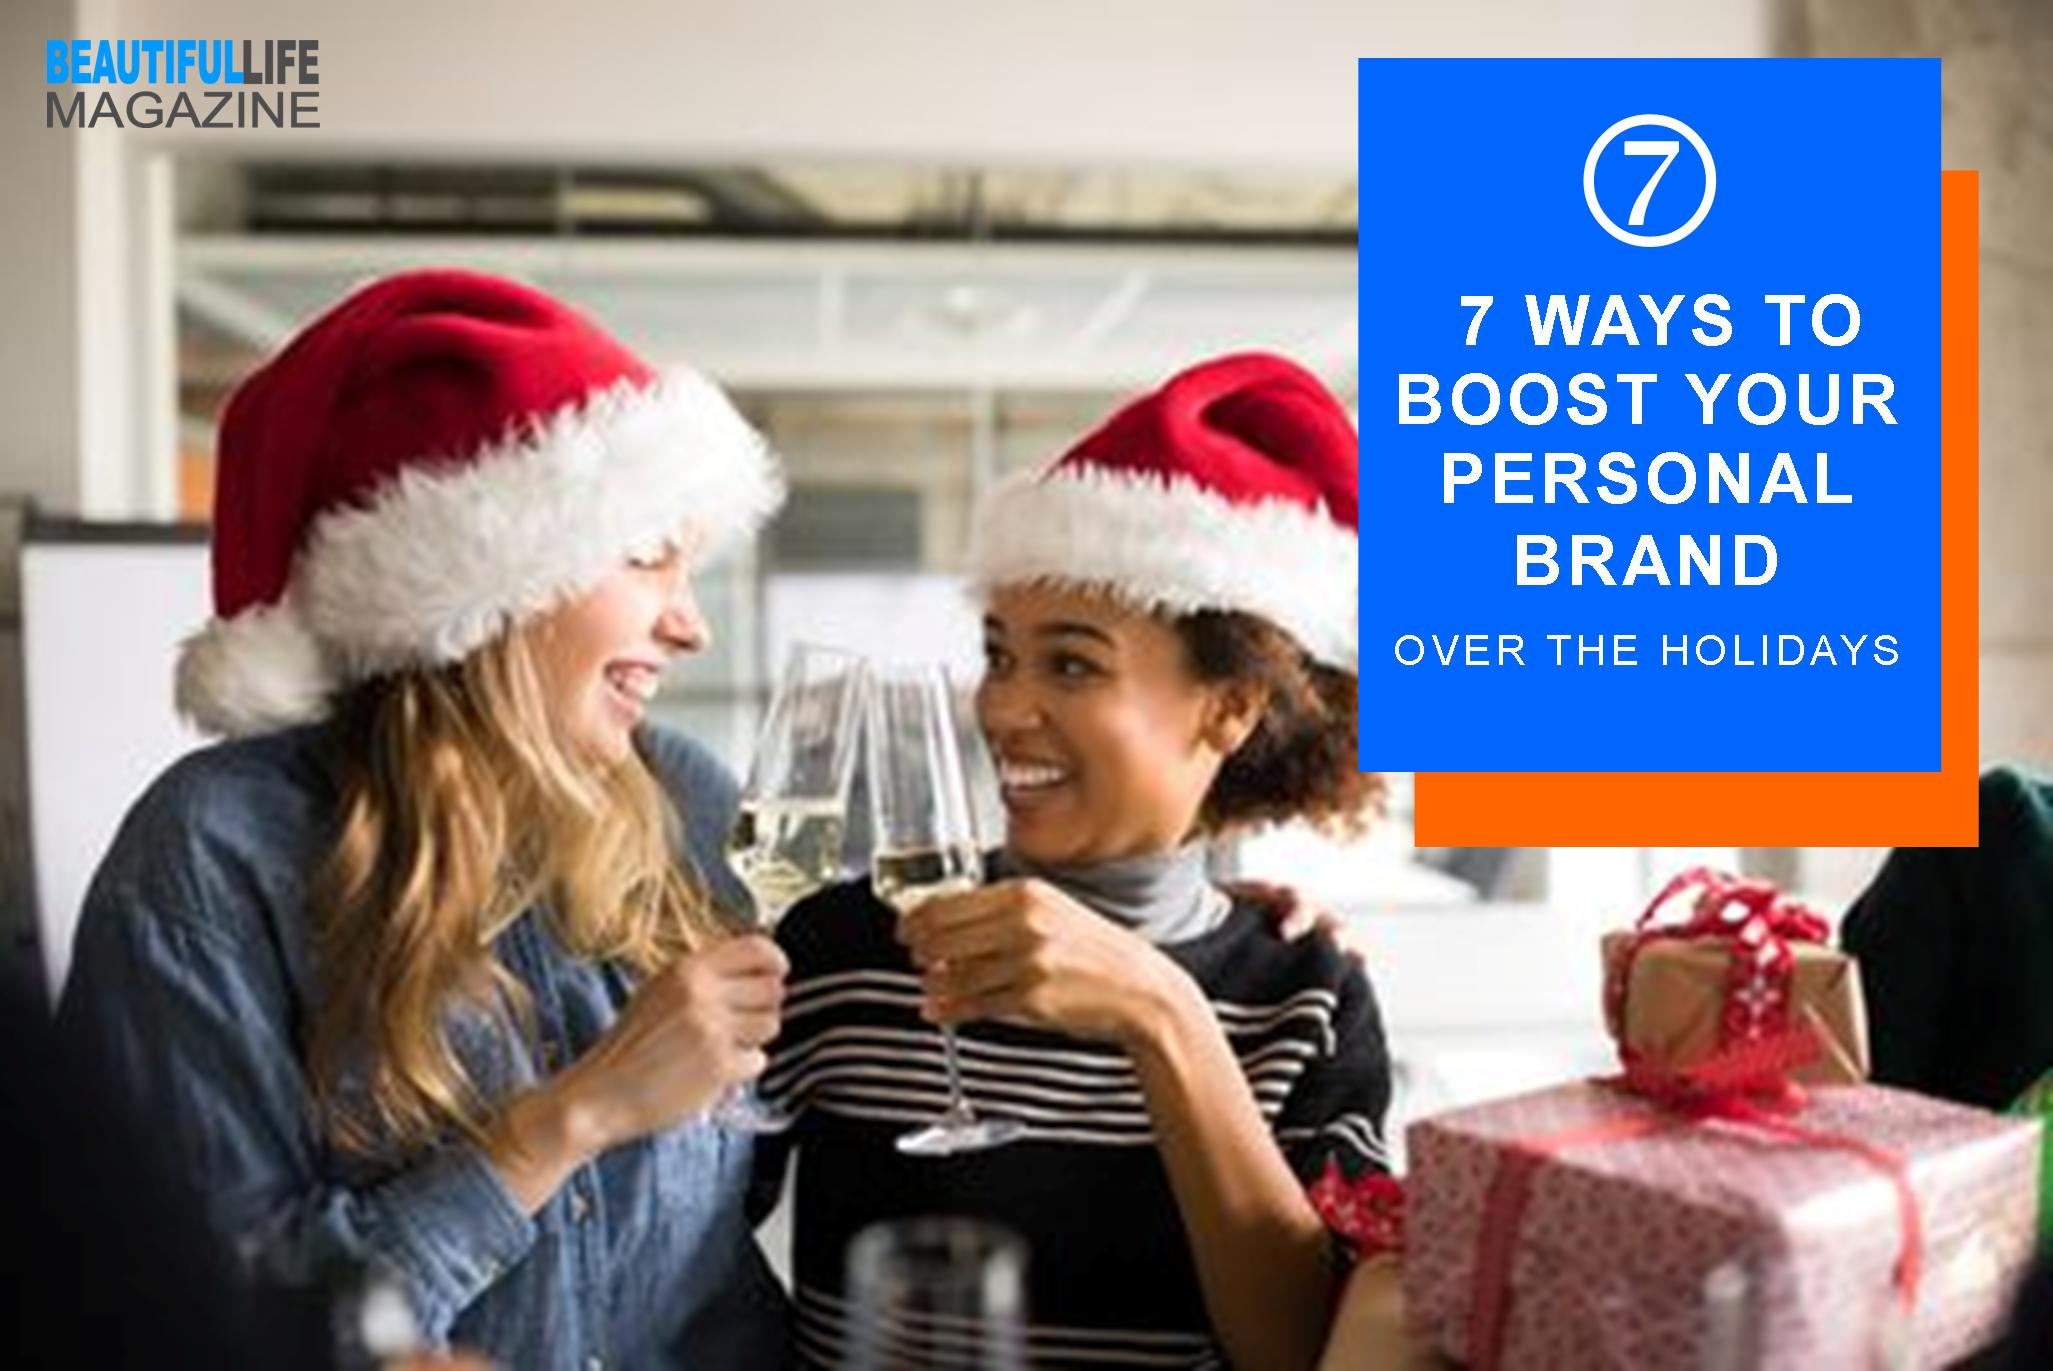 Everyone is in a state of reflection and goal setting. Here a list of 7 things you can do over the holidays to boost your personal brand.